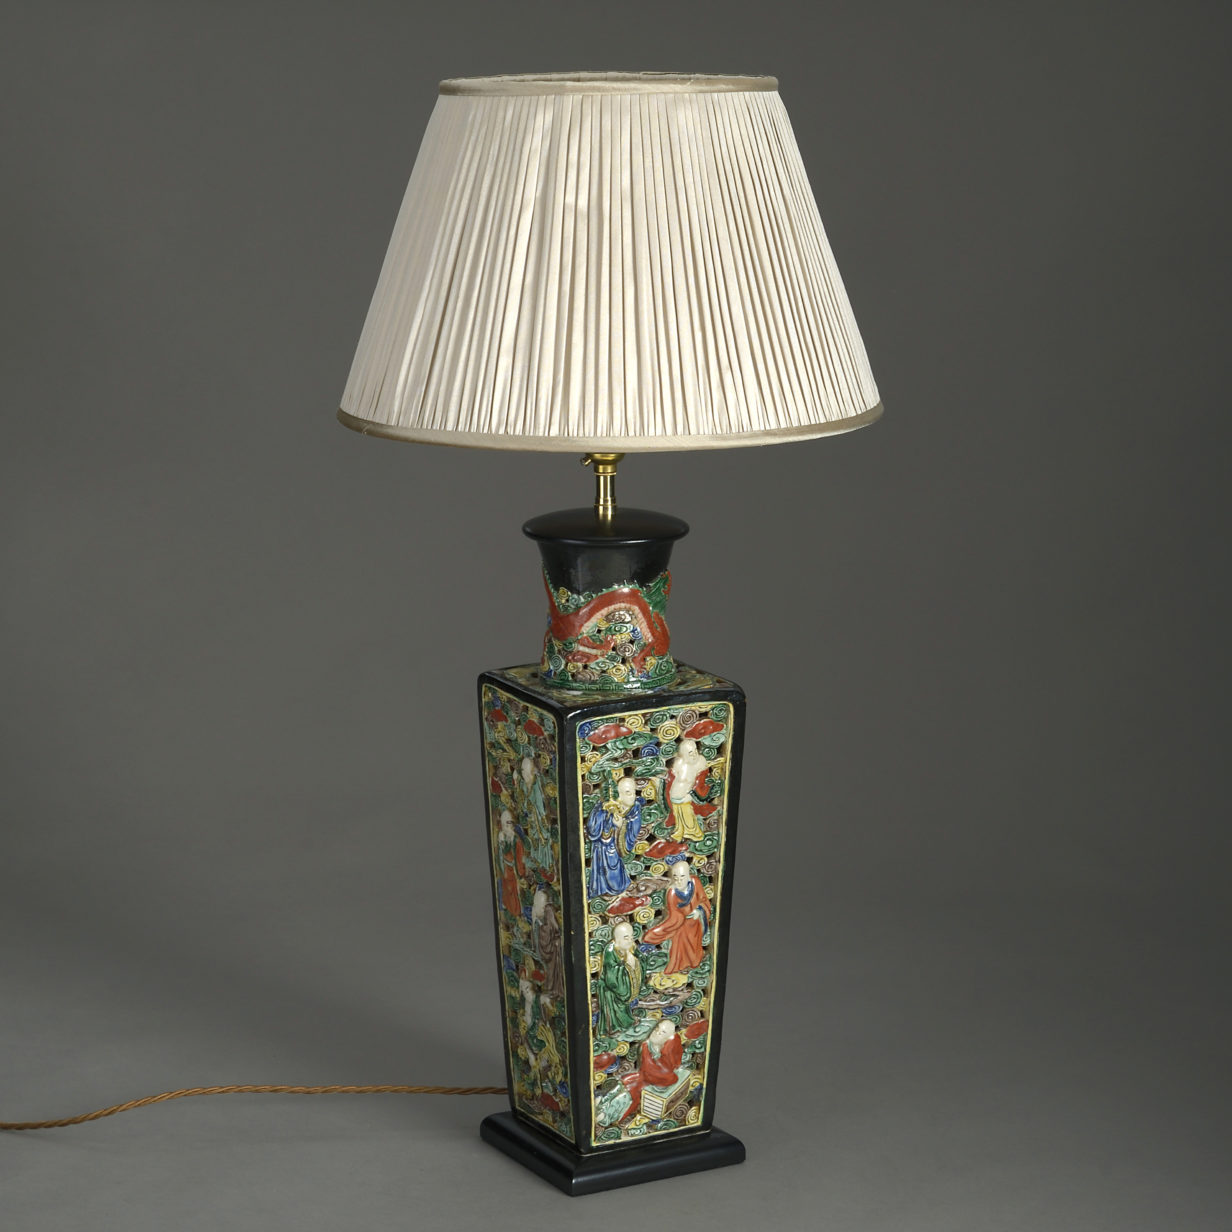 Chinese Square Vase Lamp